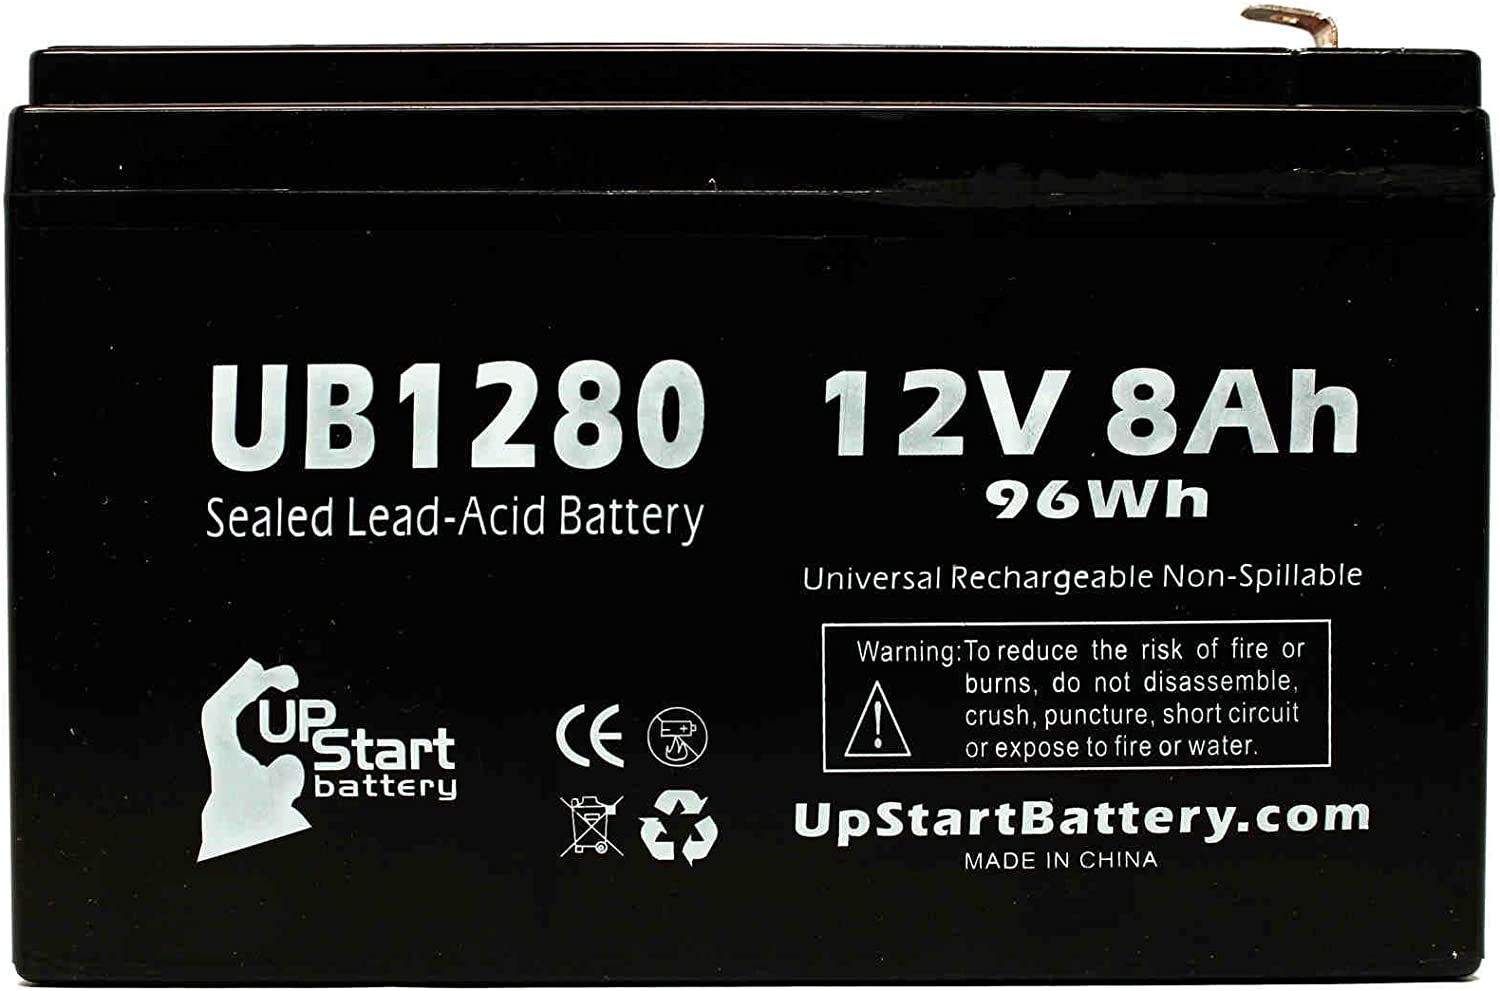 2 Pack Replacement for Tripp Lite OMNIVS1500XL Battery Replacement UB1280 Universal Sealed Lead Acid Battery 12V, 8Ah, 8000mAh, F1 Terminal, AGM, SLA - Includes 4 F1 to F2 Terminal Adapters